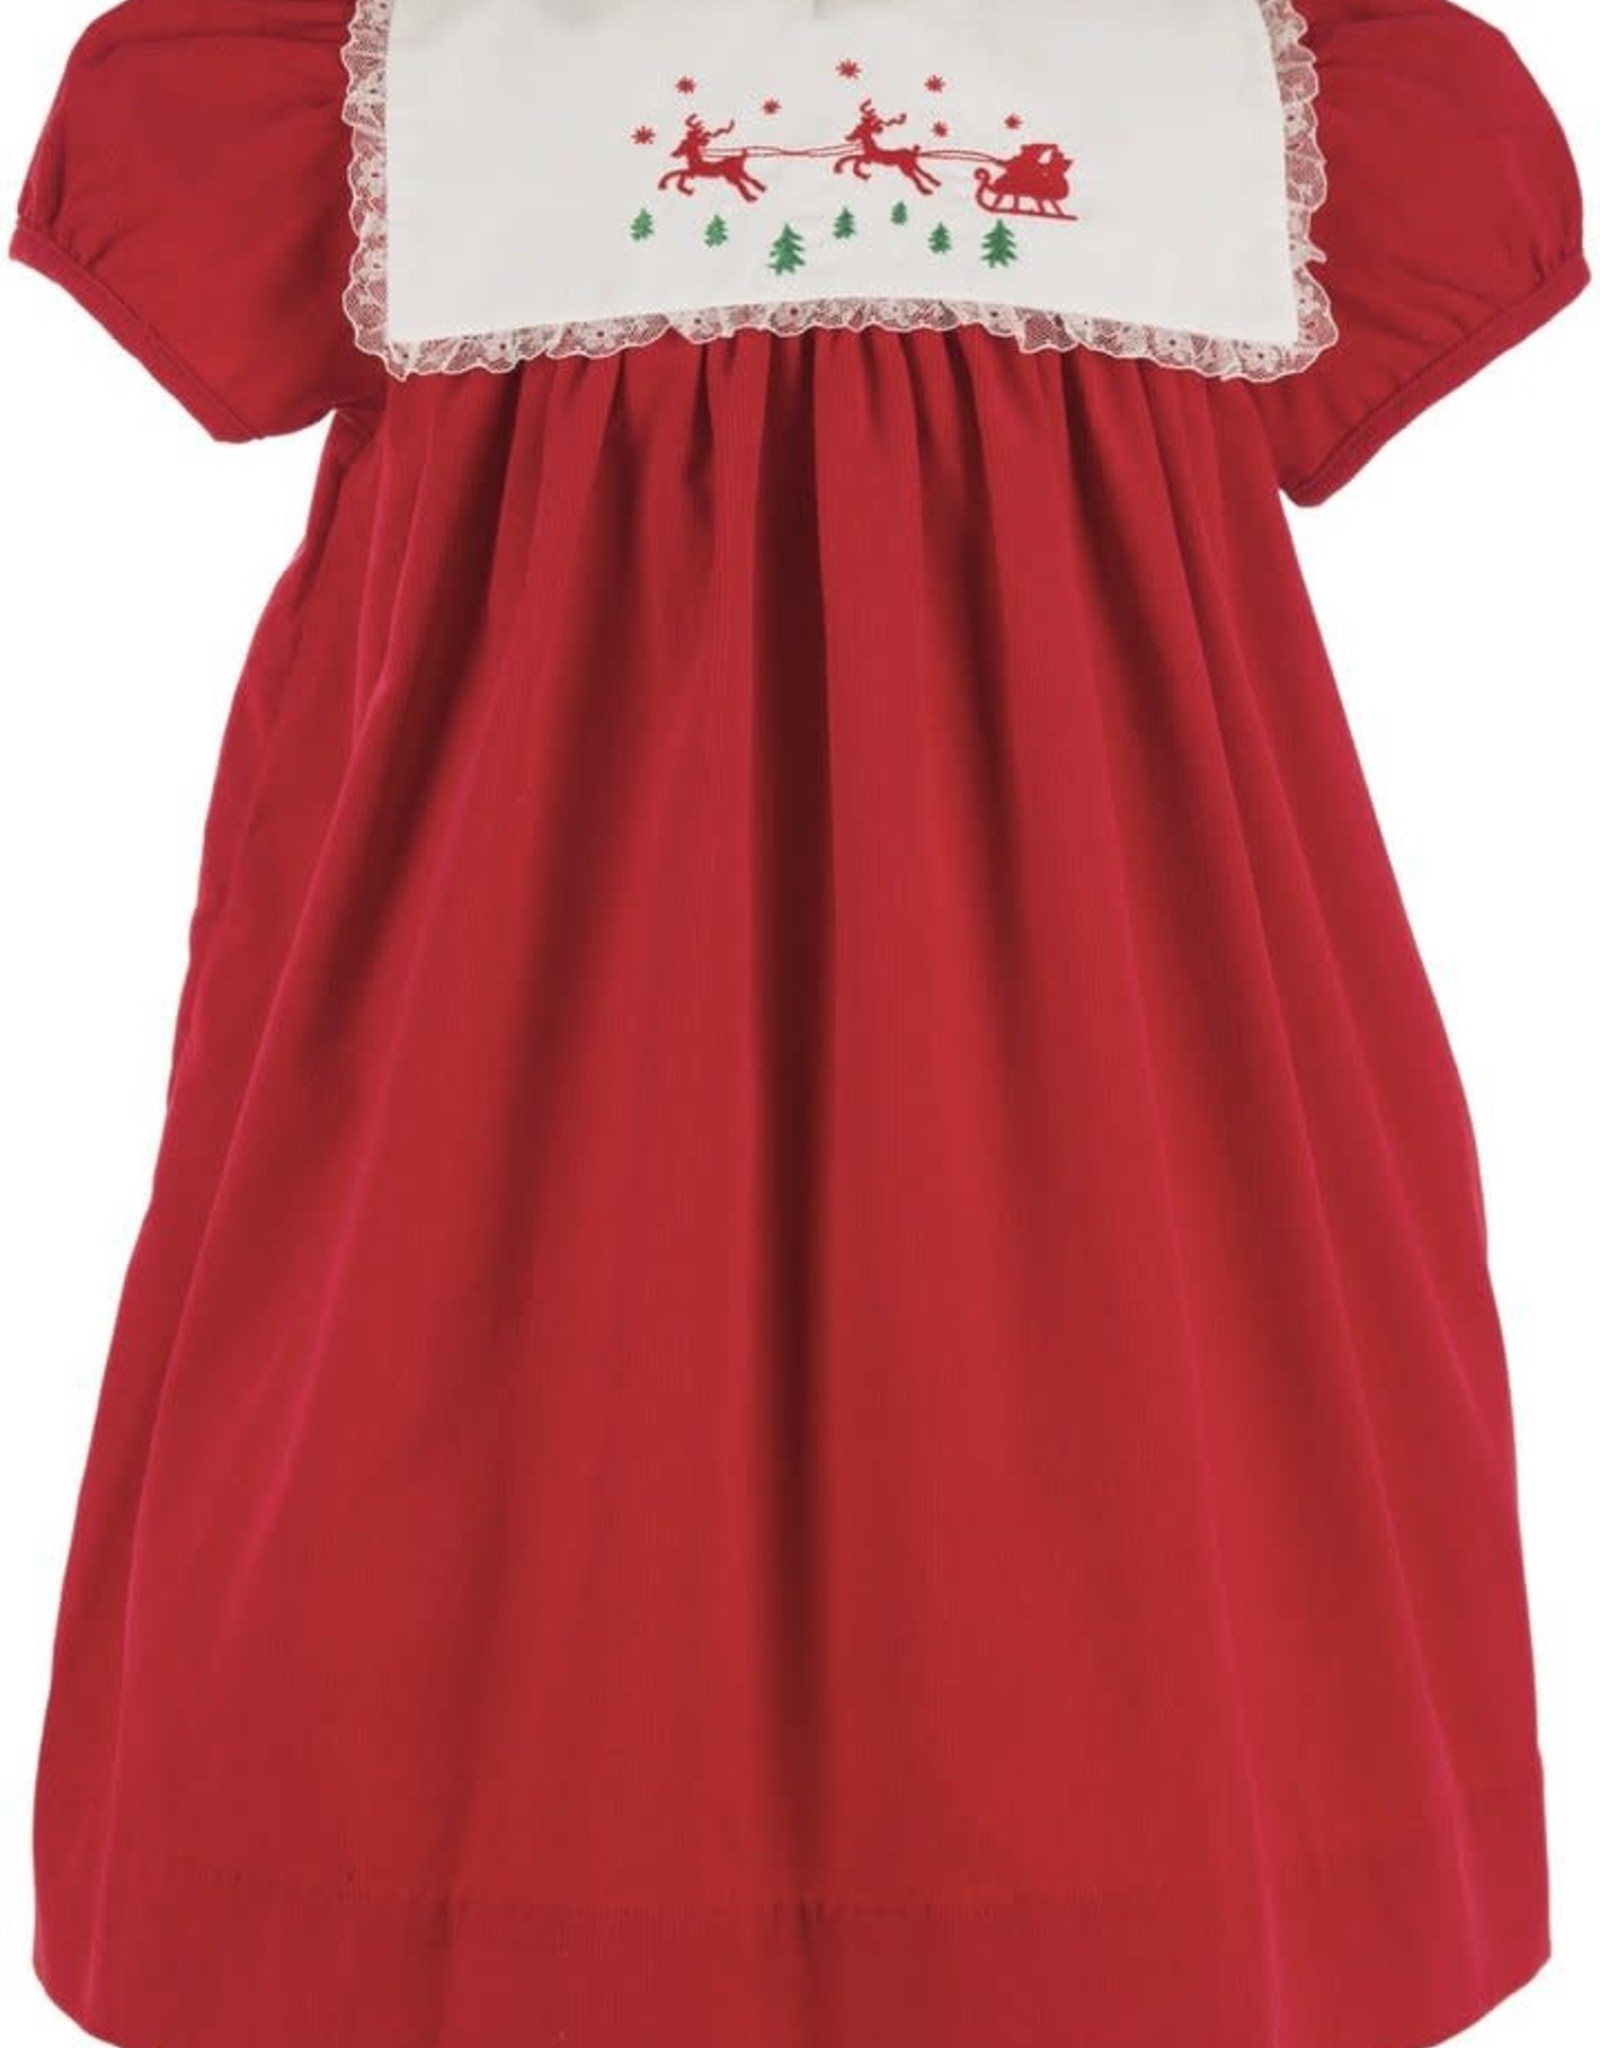 Carriage Boutique Reindeer Dress with Bonnet